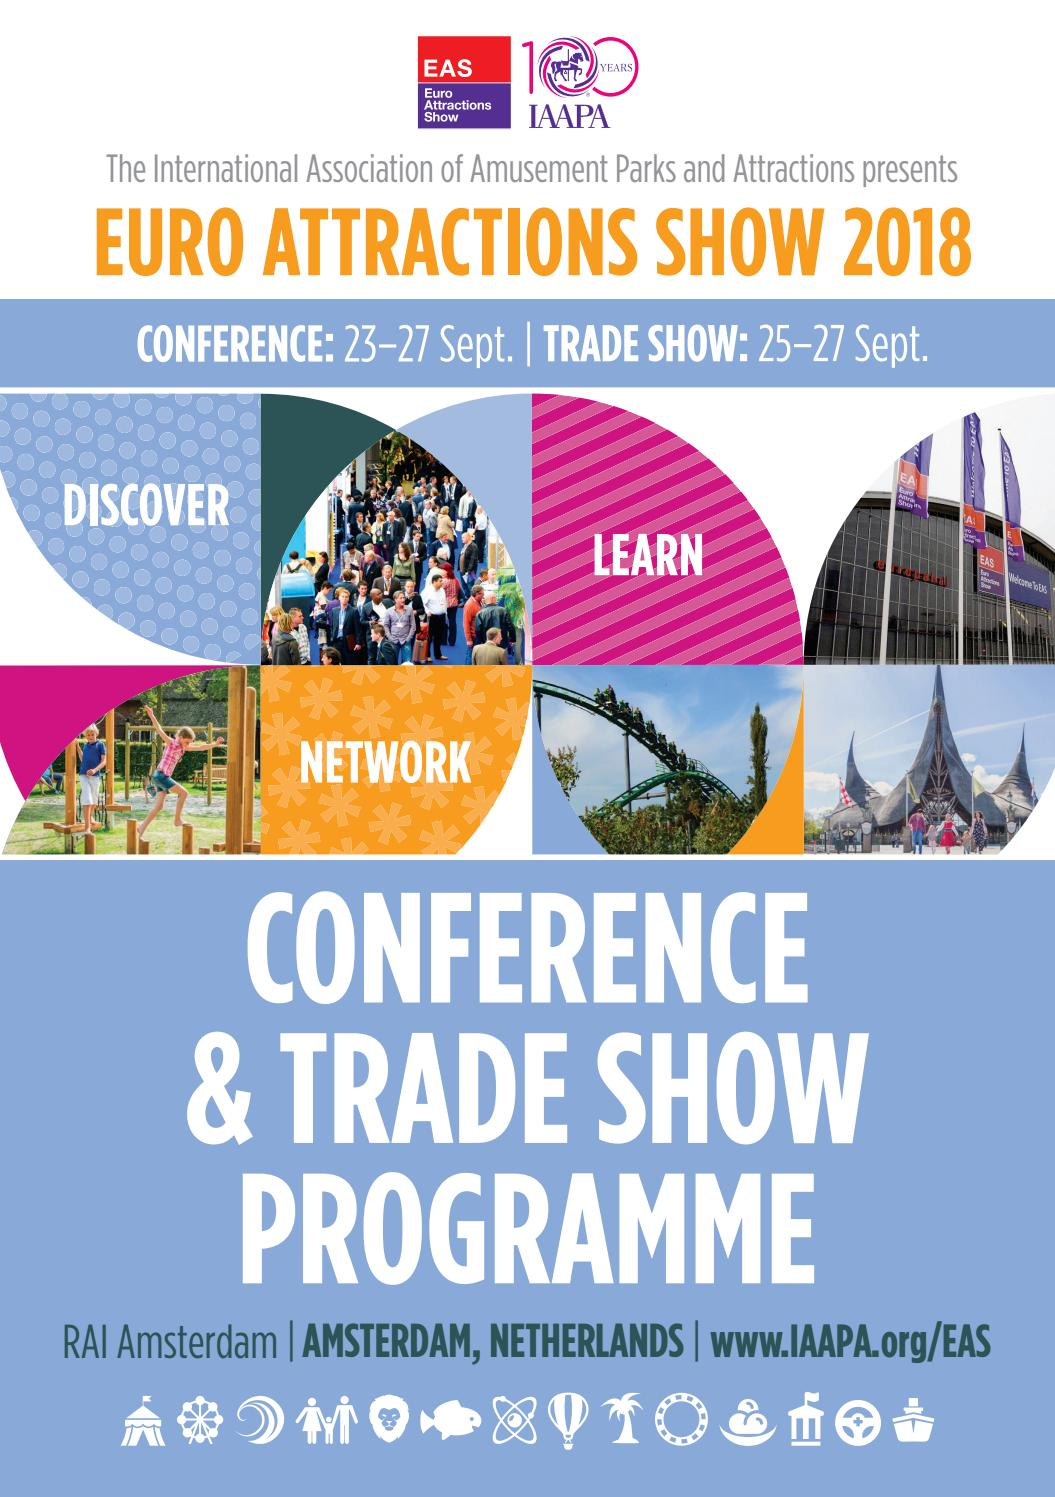 Caminetto Montegrappa Duo Plus 70 Euro Attractions Show 2018 Conference Trade Show Programme By